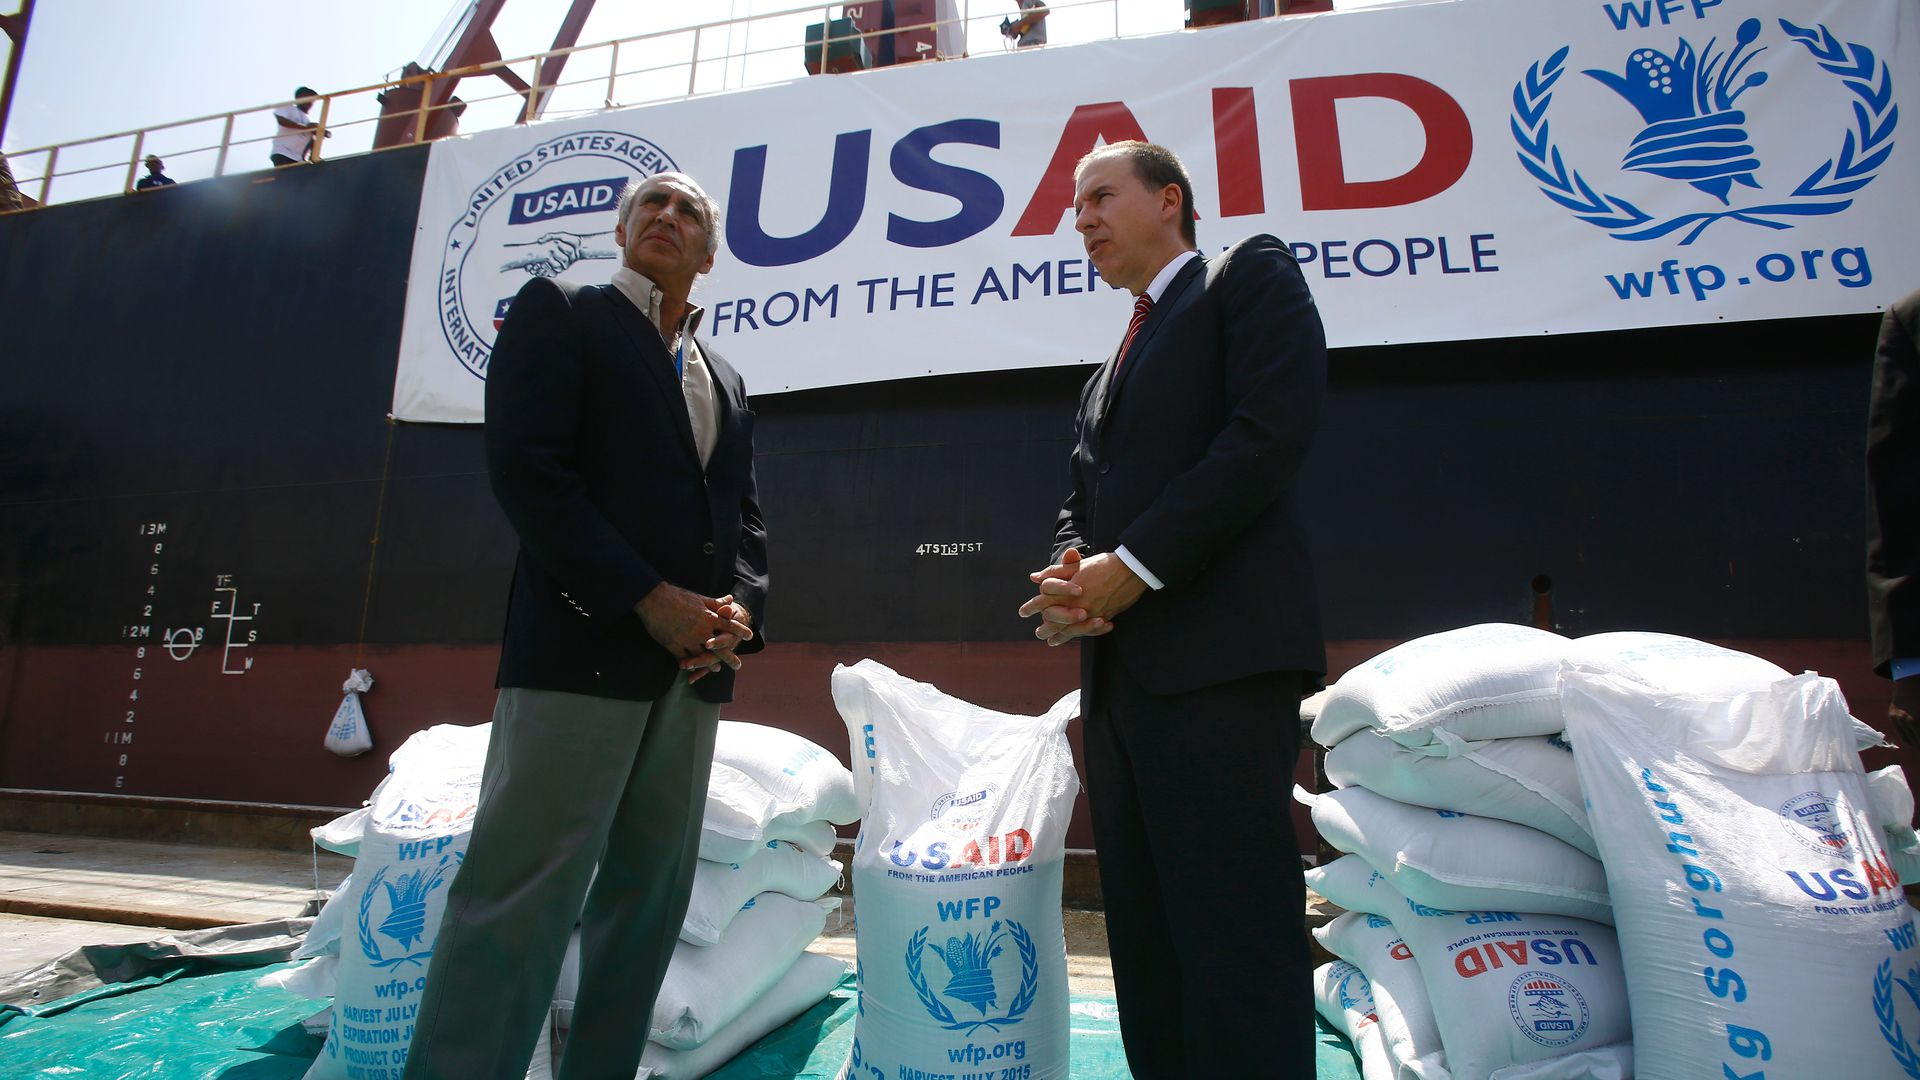 A USAID shipment arriving in Sudan. Photo: Ashraf Shazly / AFP via Getty Images